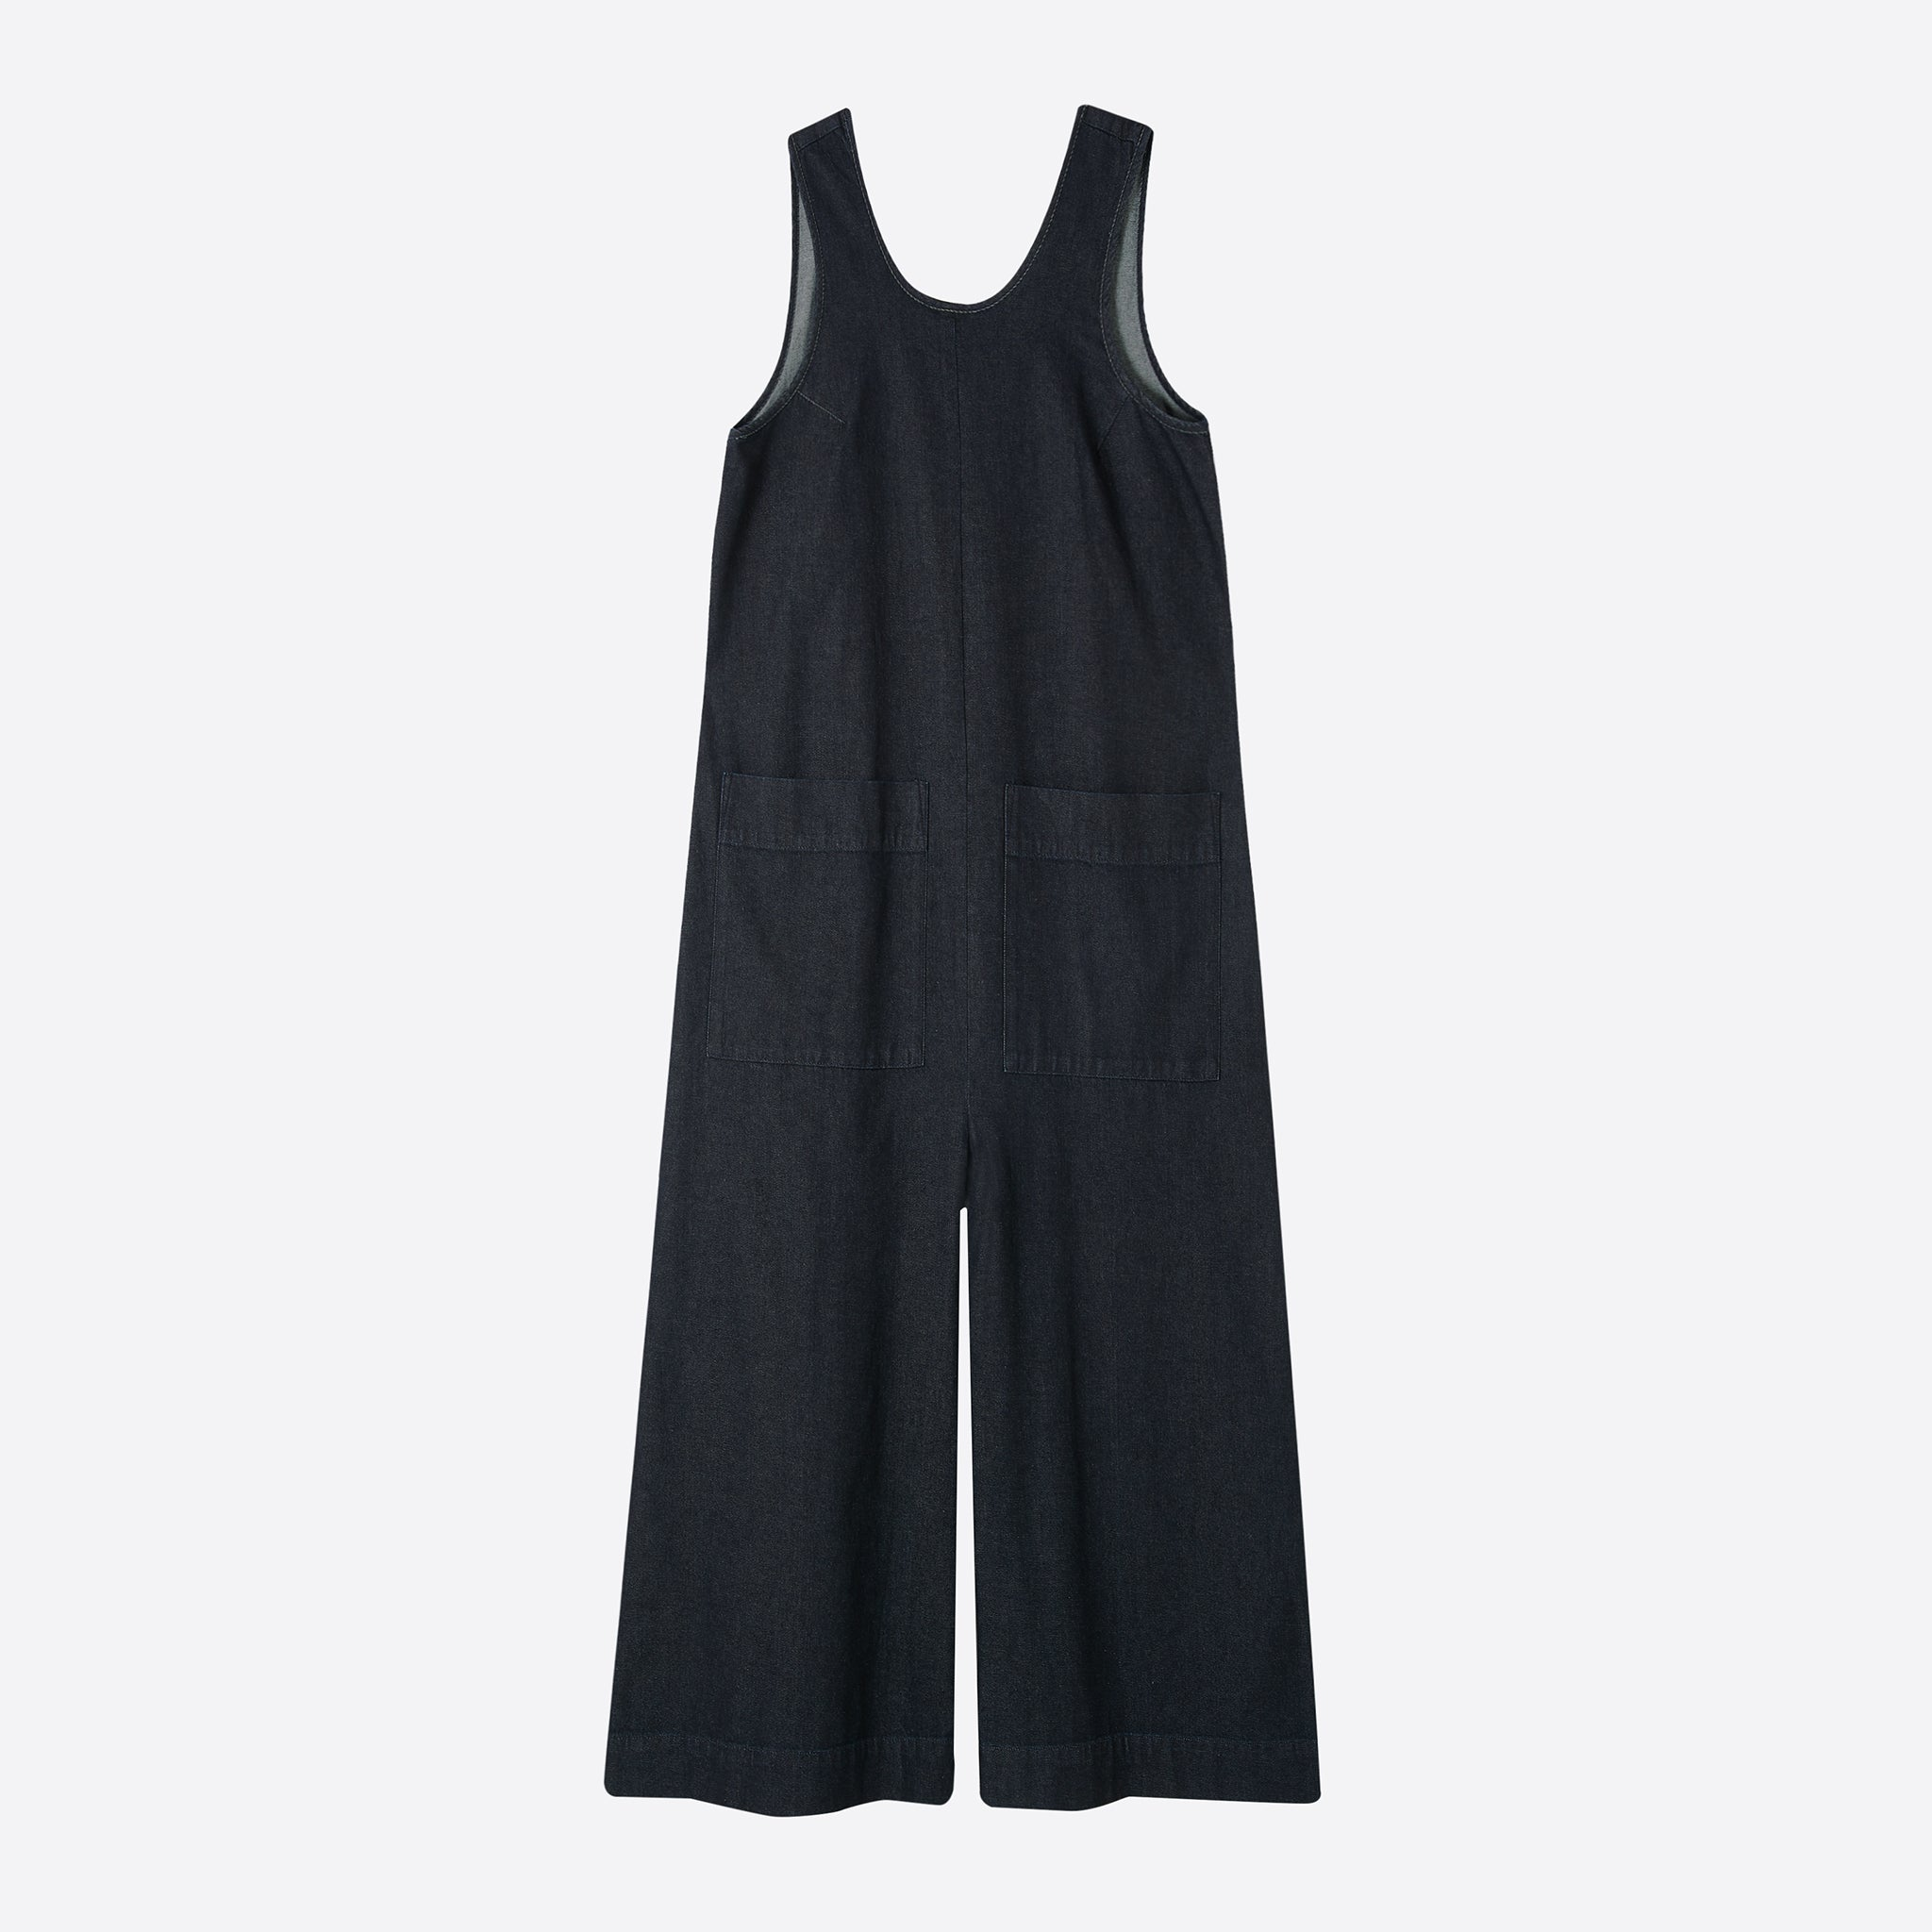 Ilana Kohn Milo Jumpsuit in Denim